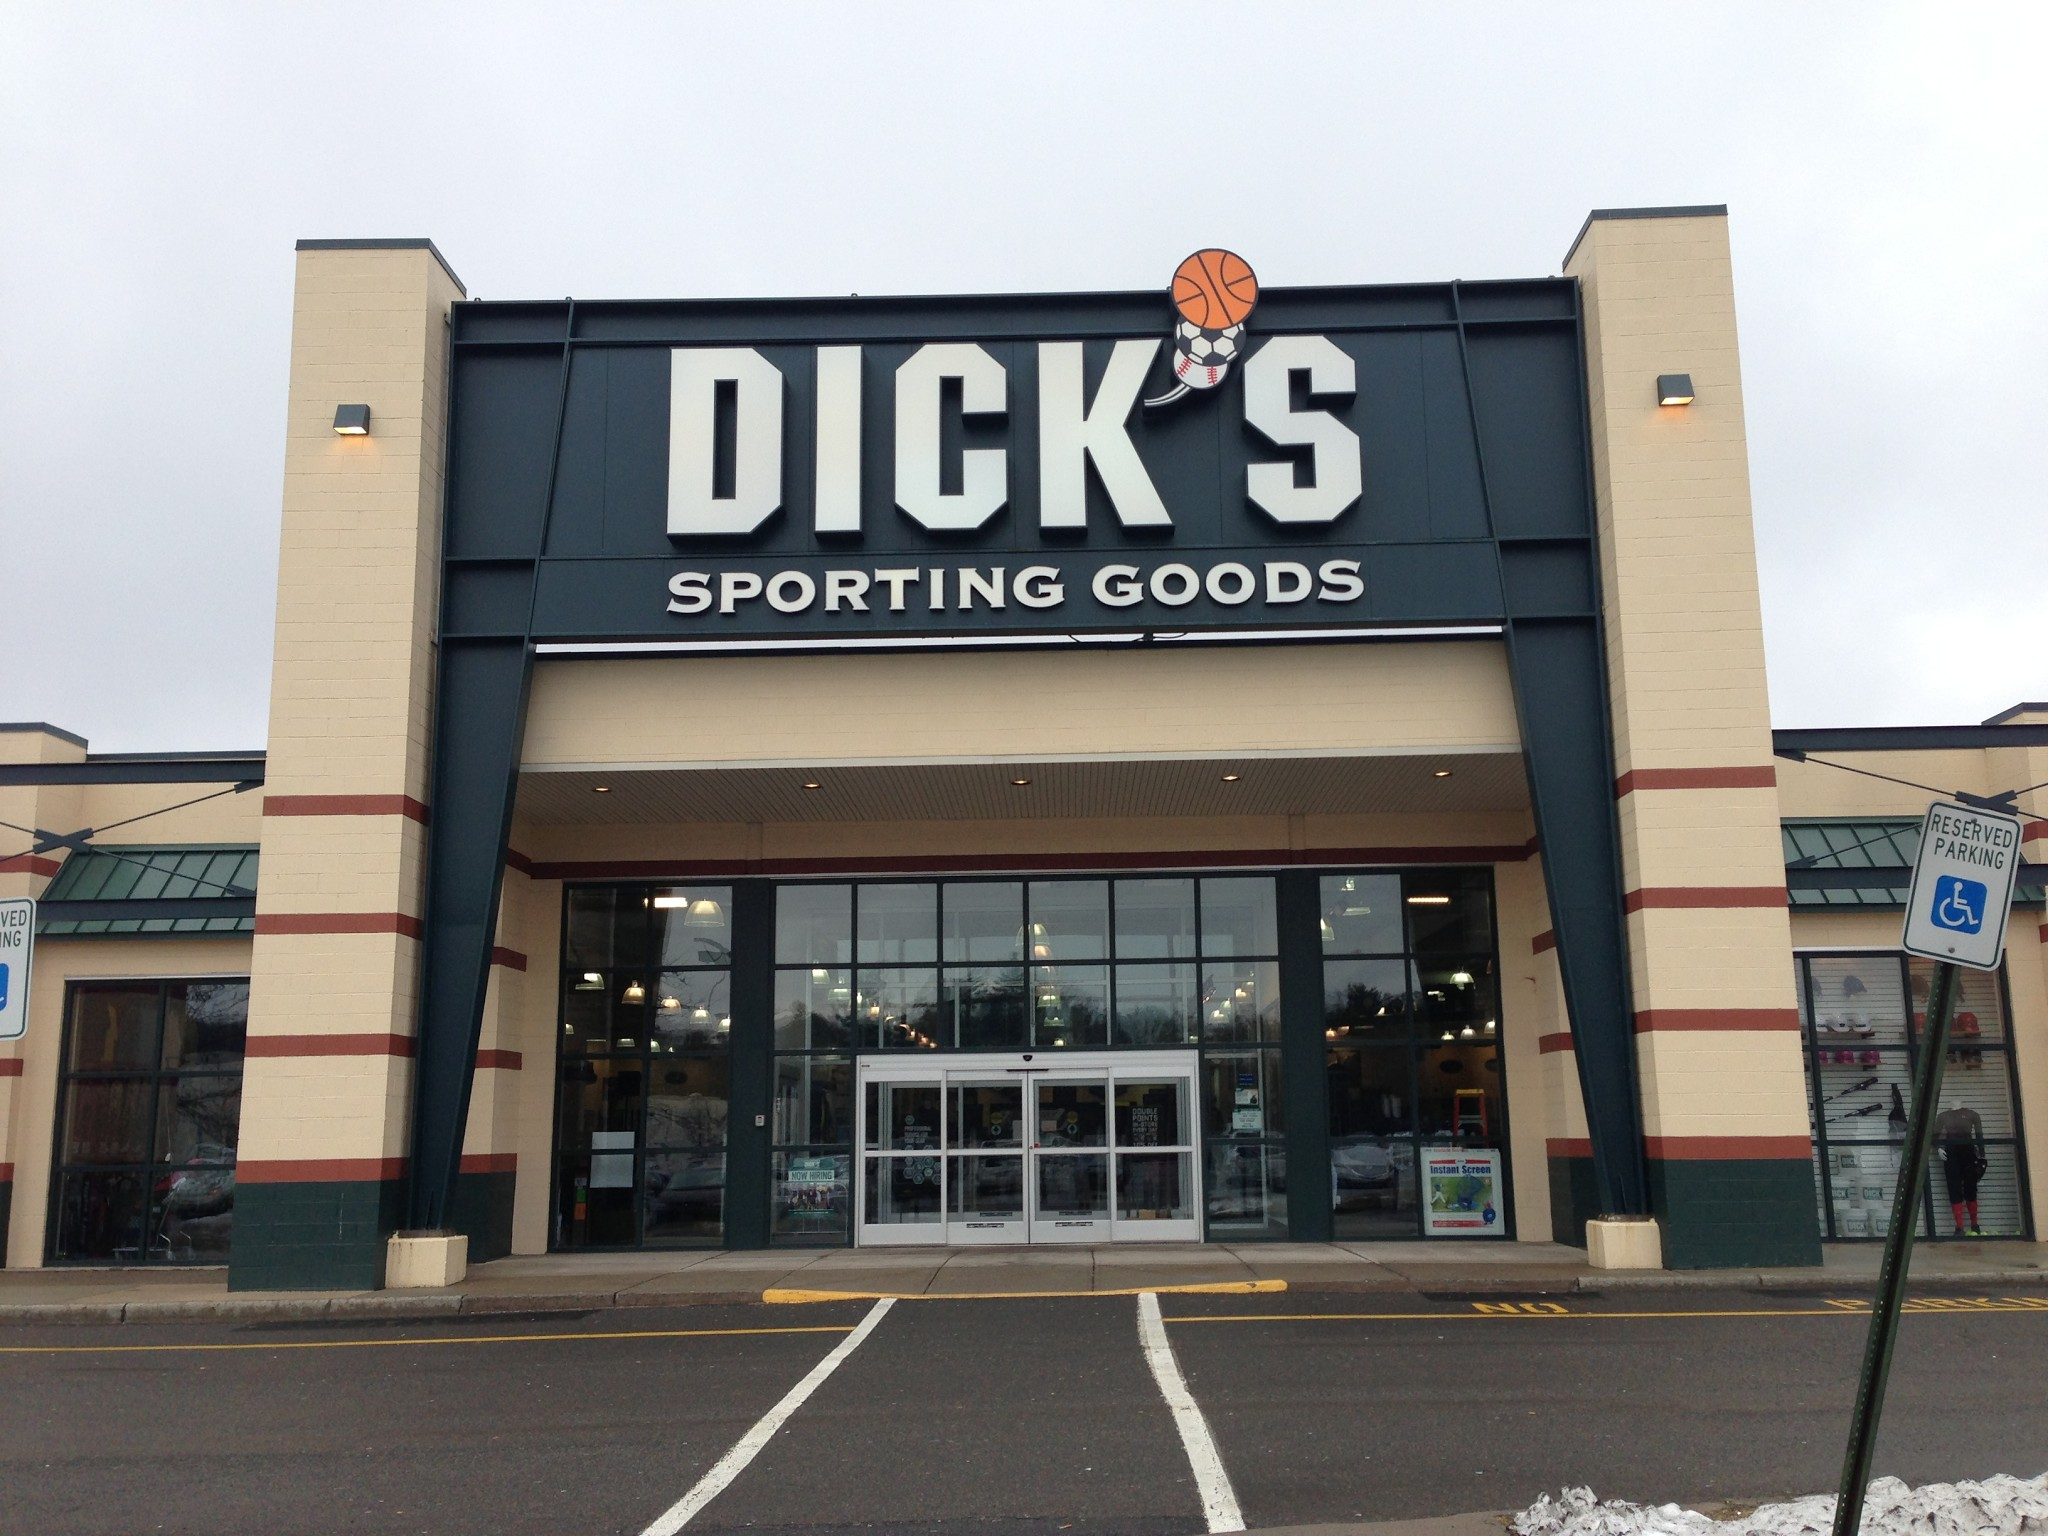 dicks sporting goods Visit the dick's sporting goods store in folsom, ca   1277 find store hours, phone number, address and in-store services for the dick's store in folsom.